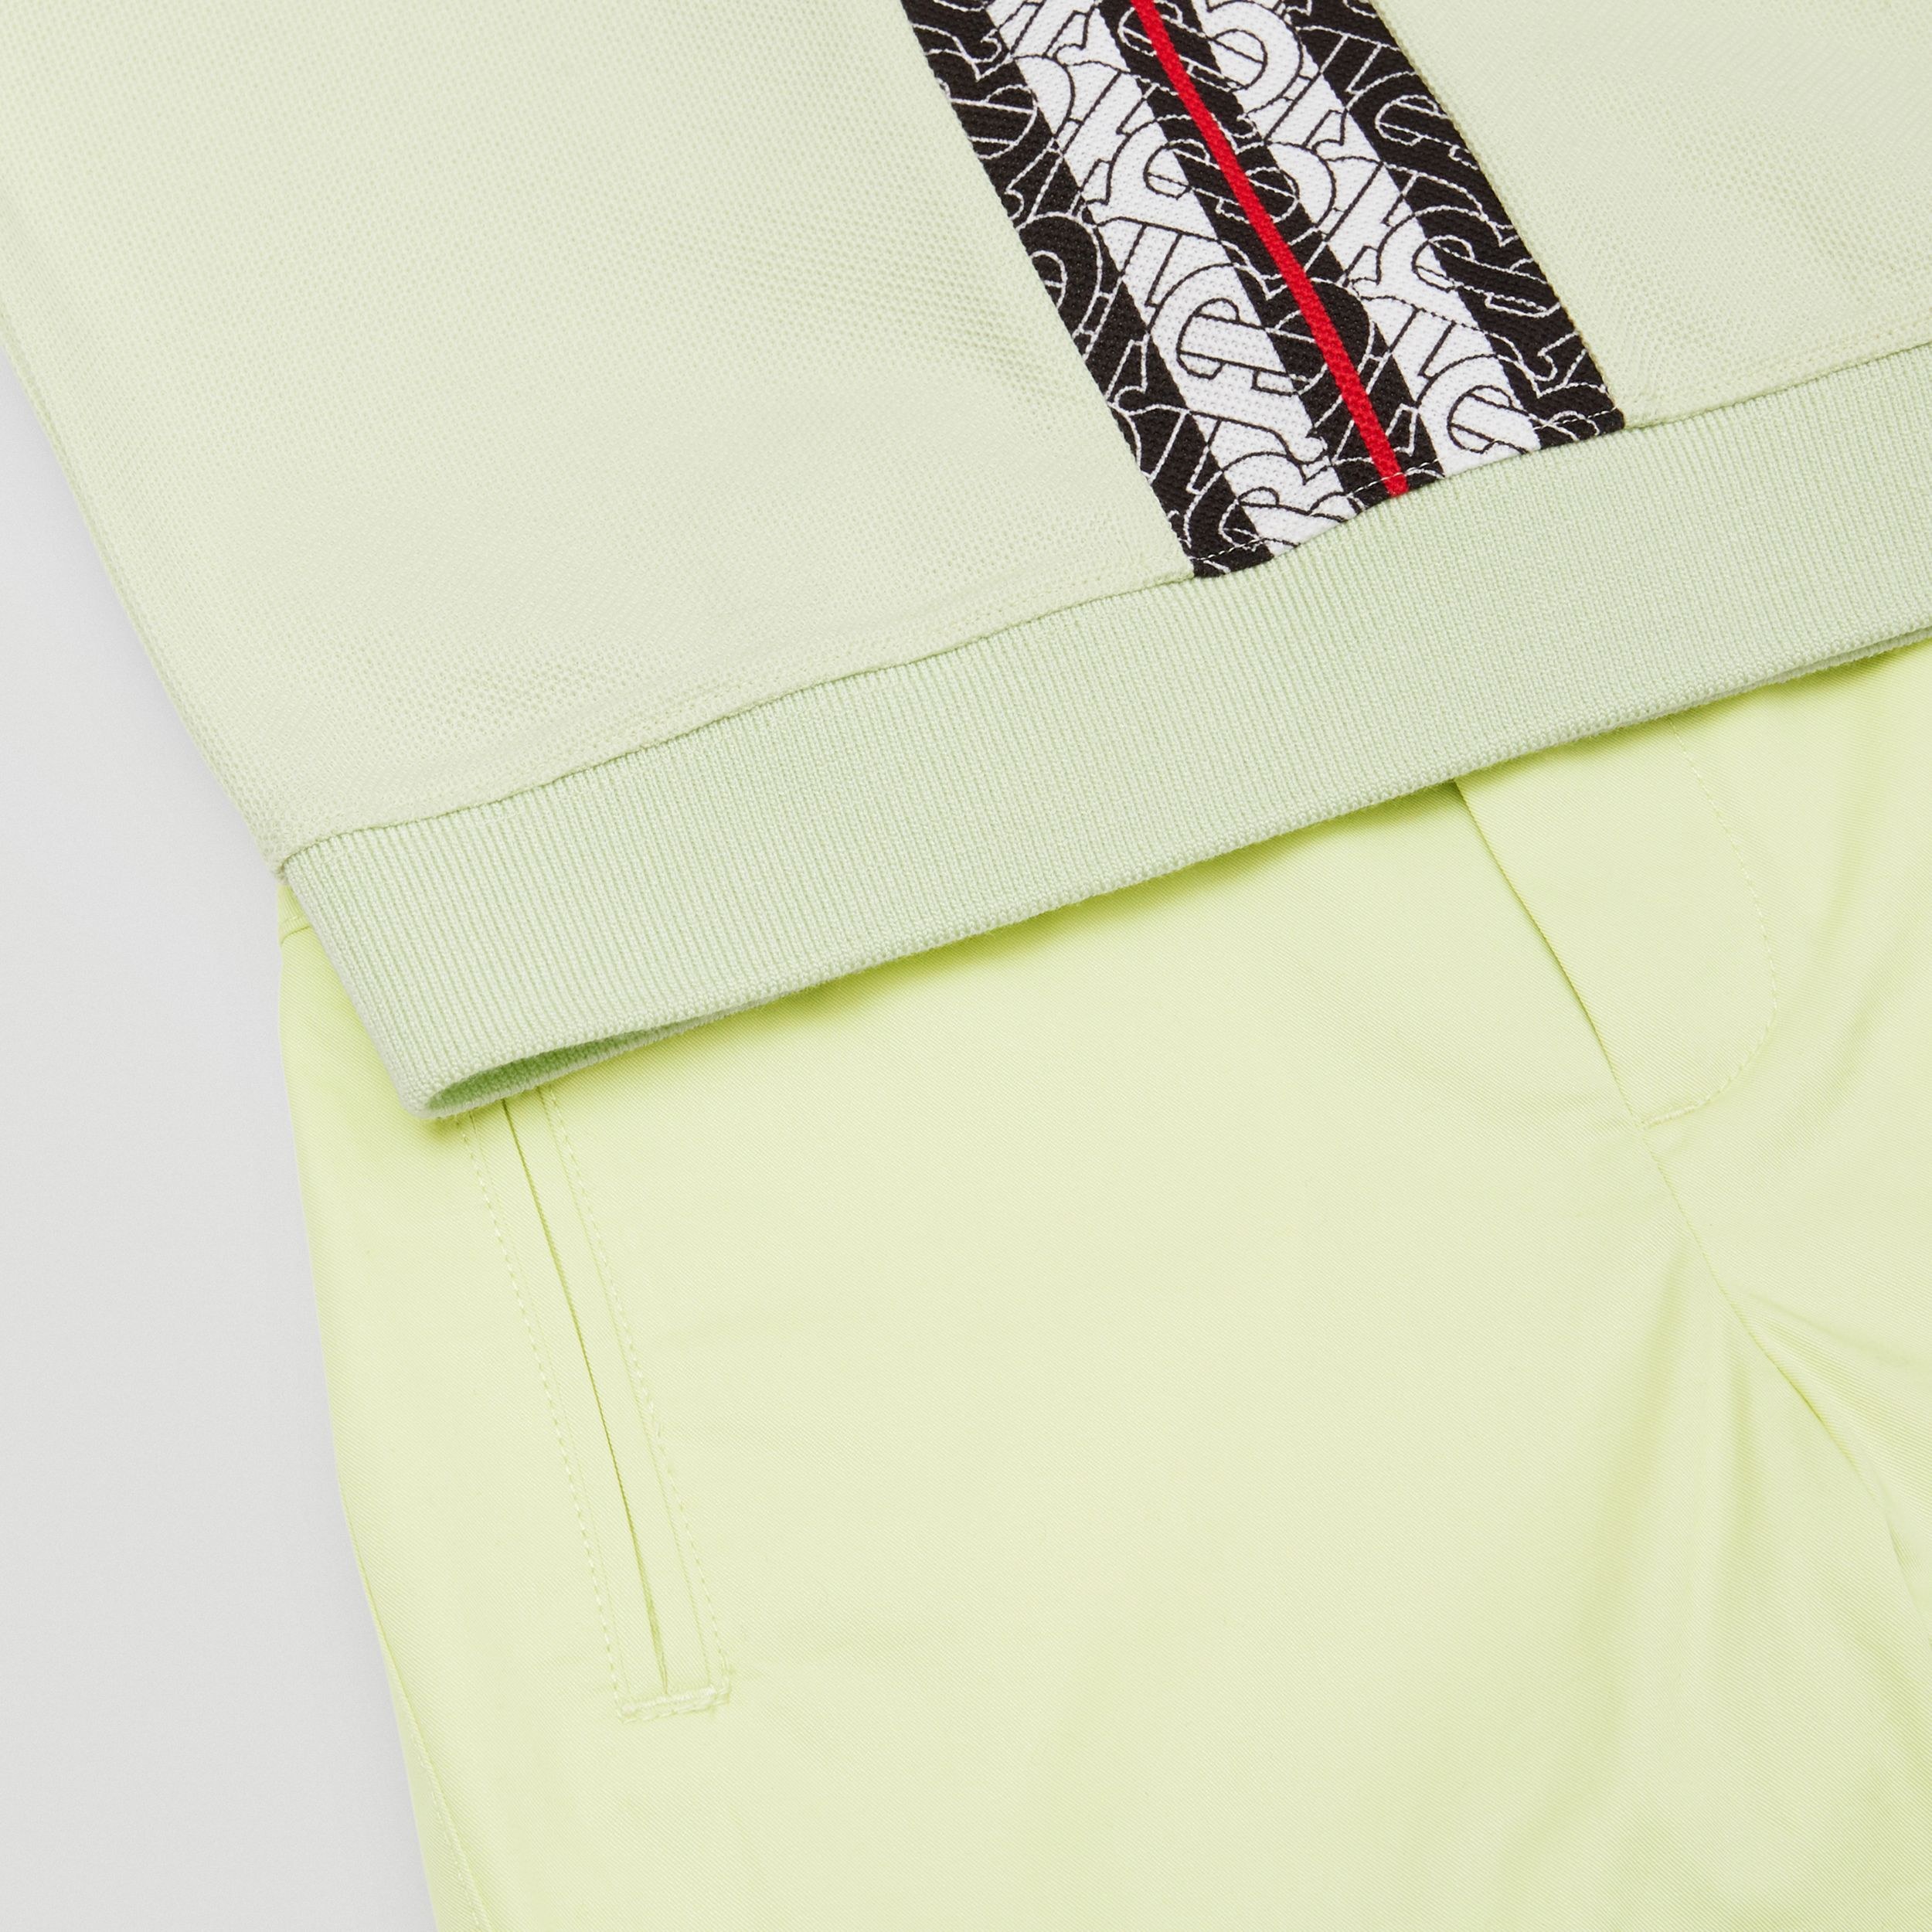 Embroidered Logo Cotton Shorts in Pistachio | Burberry - 2